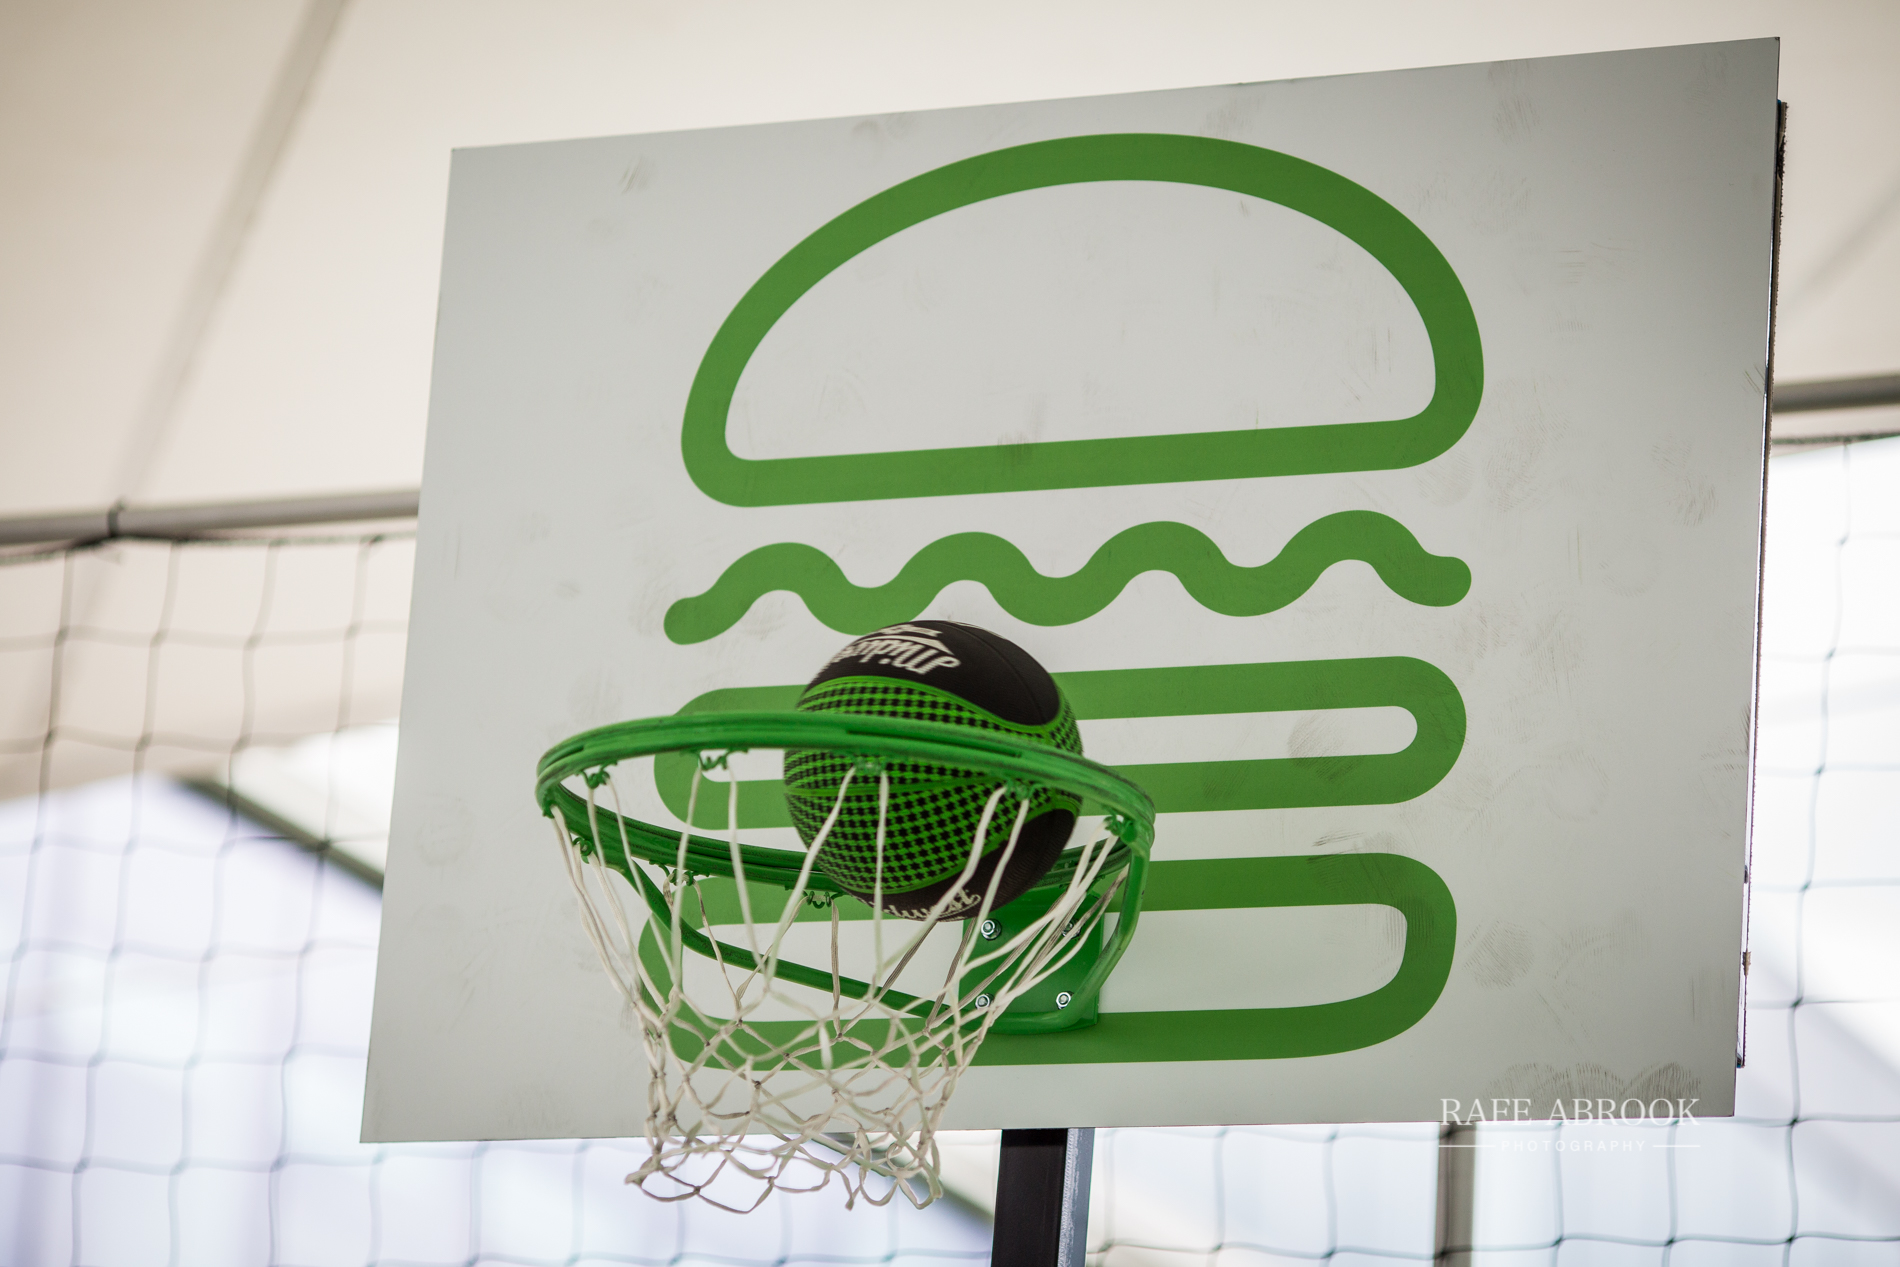 shake shack uk westfield stratford london experiential basketball-1167.jpg